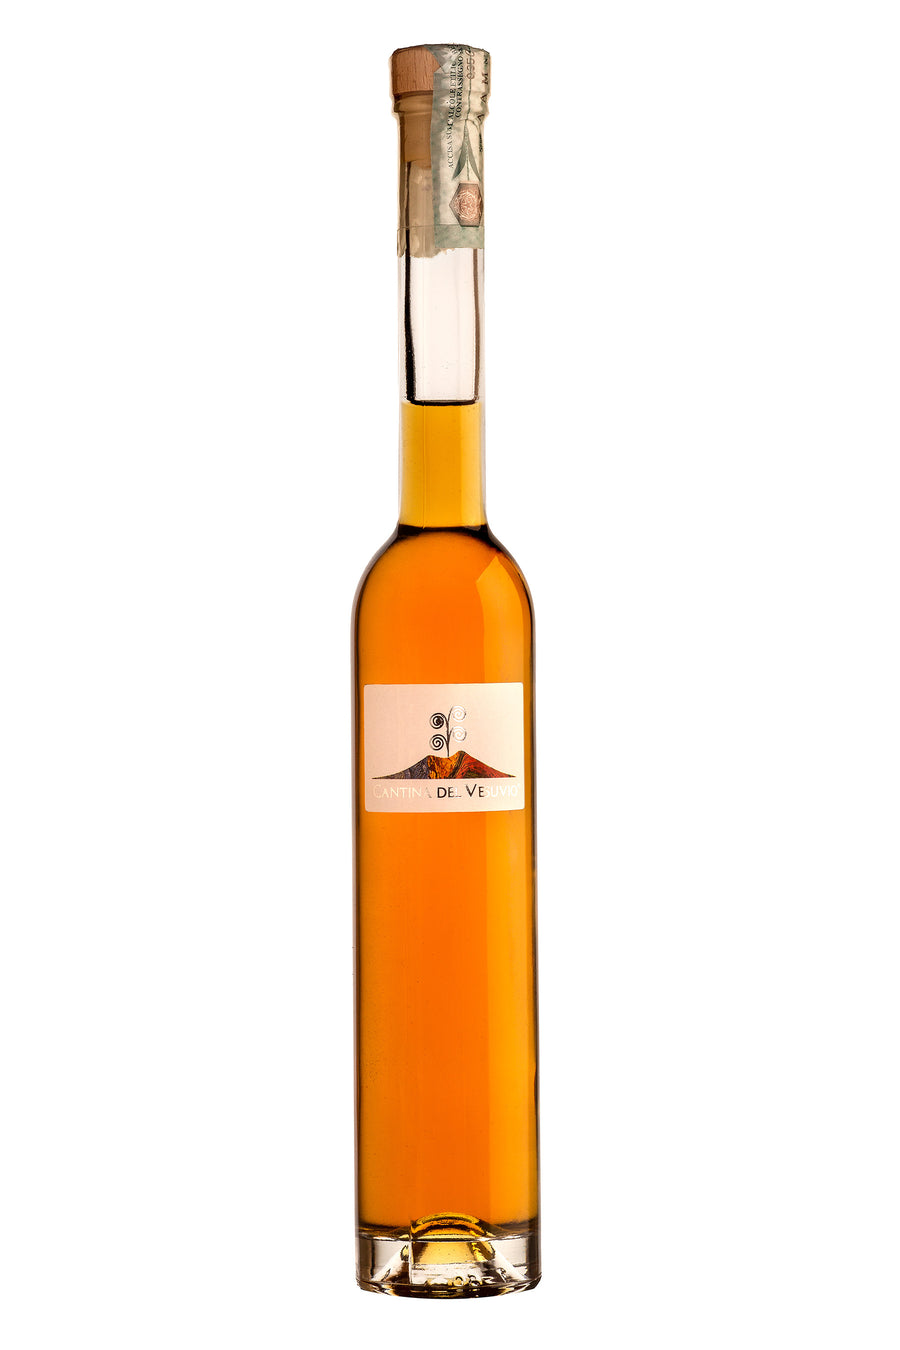 Grappa from Vesuvius